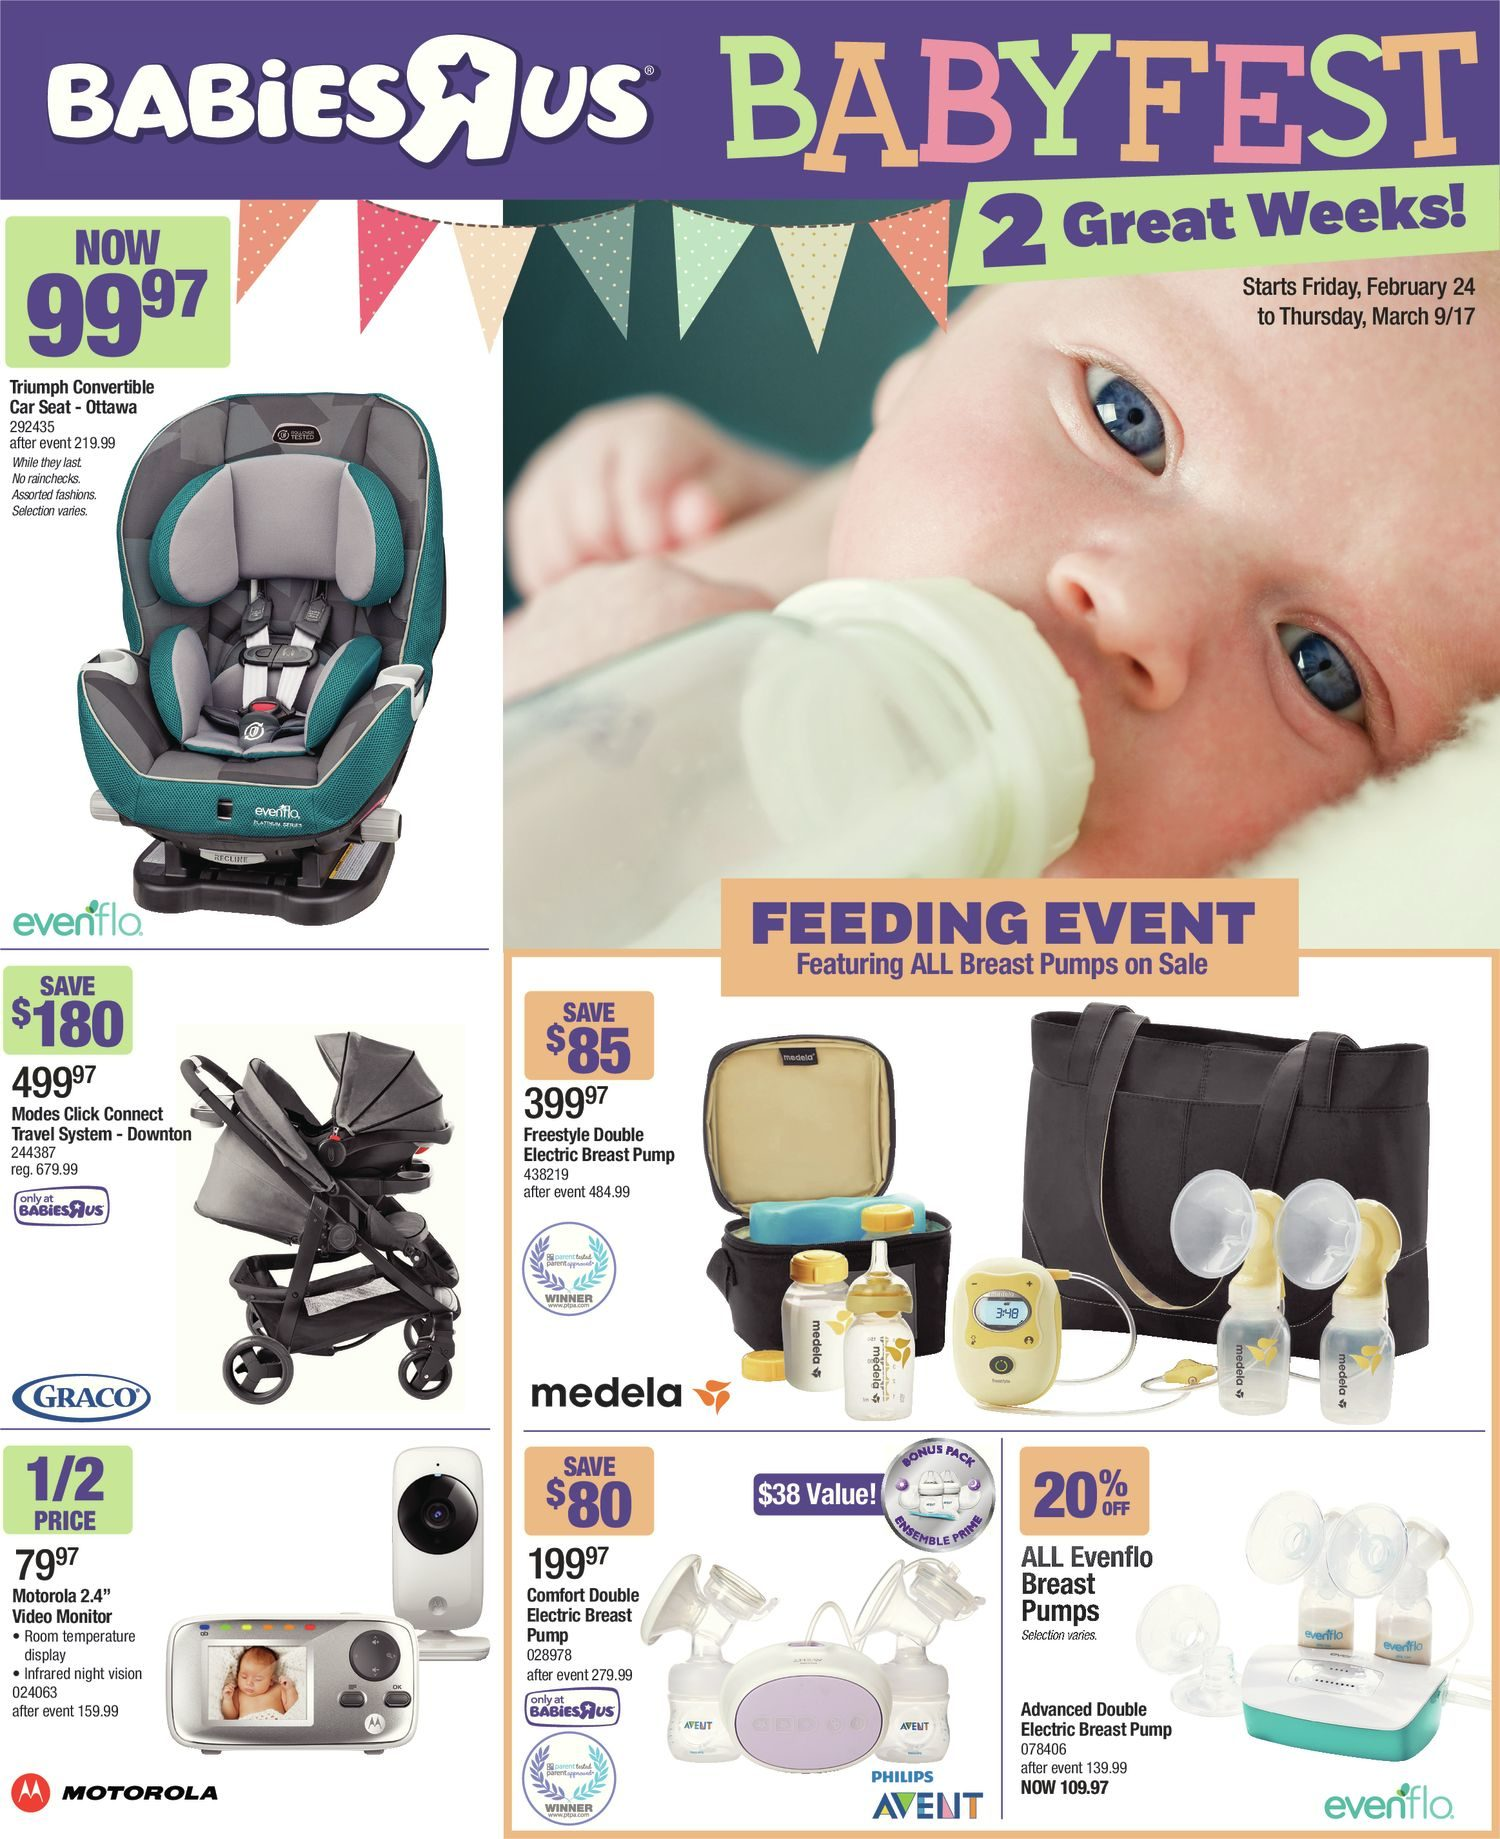 aa225dfef6d5 Babies R Us Weekly Flyer - 2 Great Weeks! - Babyfest Sale - Feb 24 ...